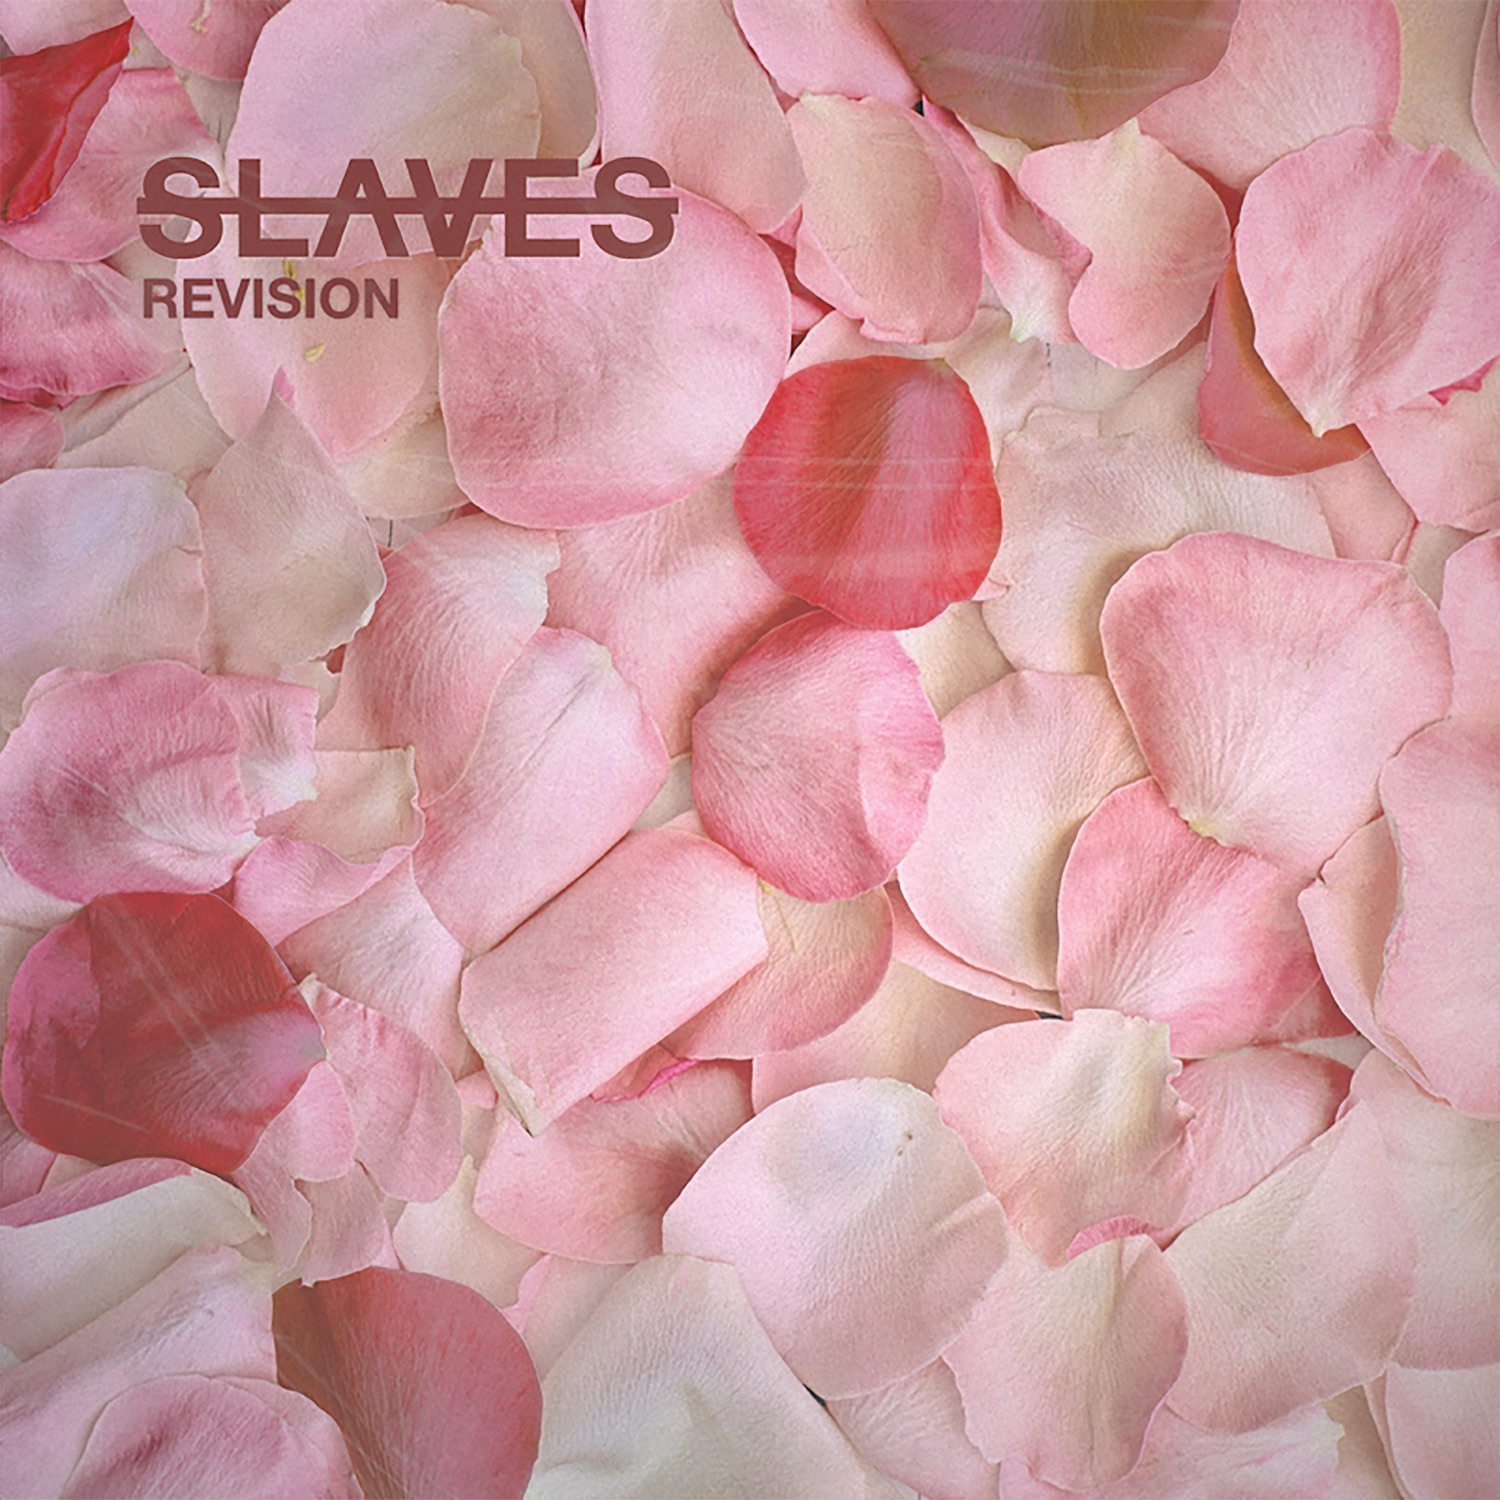 Slaves - Body on Fire [single] (2018)